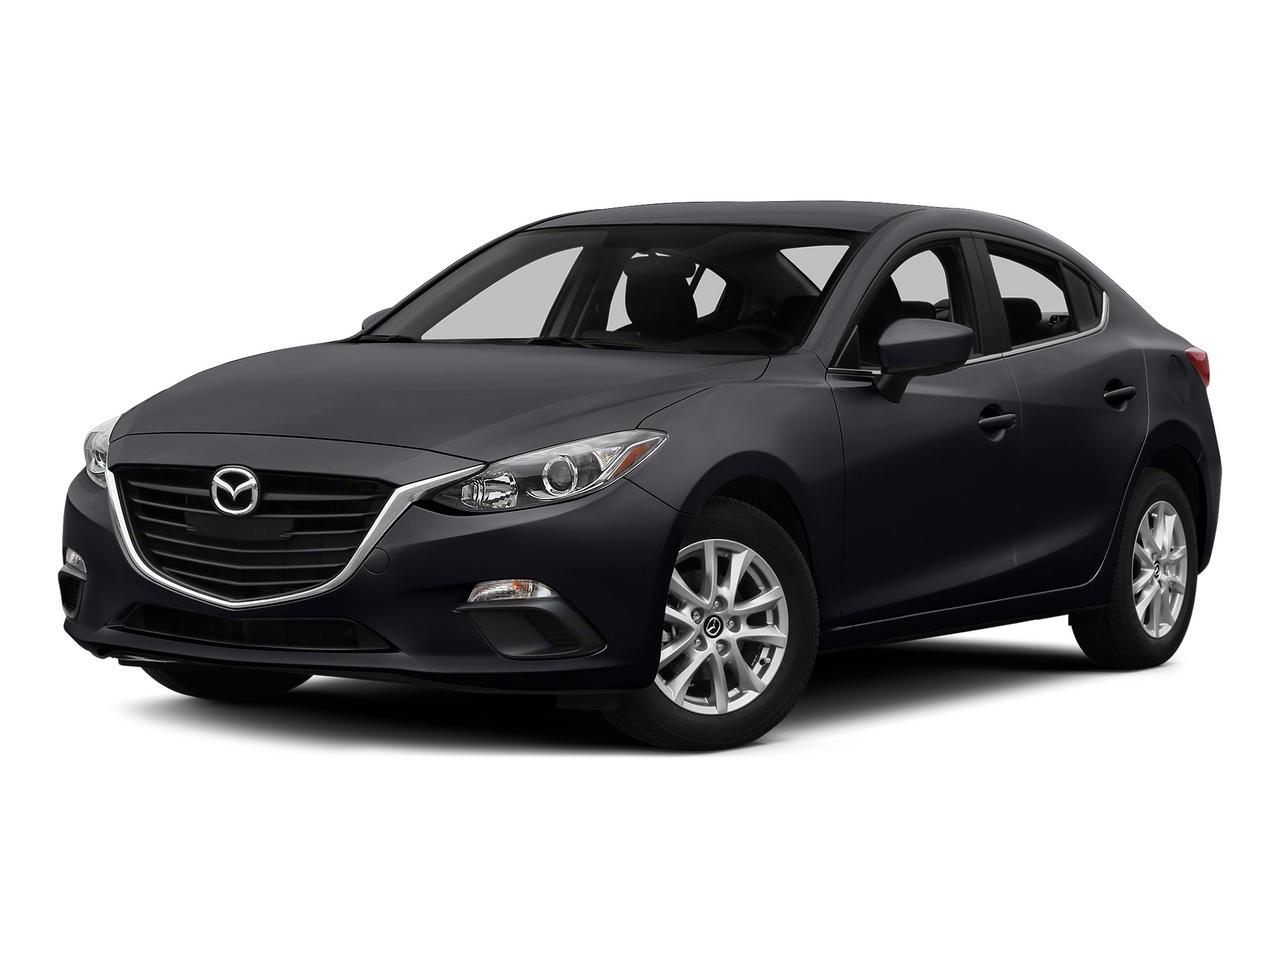 2015 Mazda Mazda3 Vehicle Photo in San Antonio, TX 78257